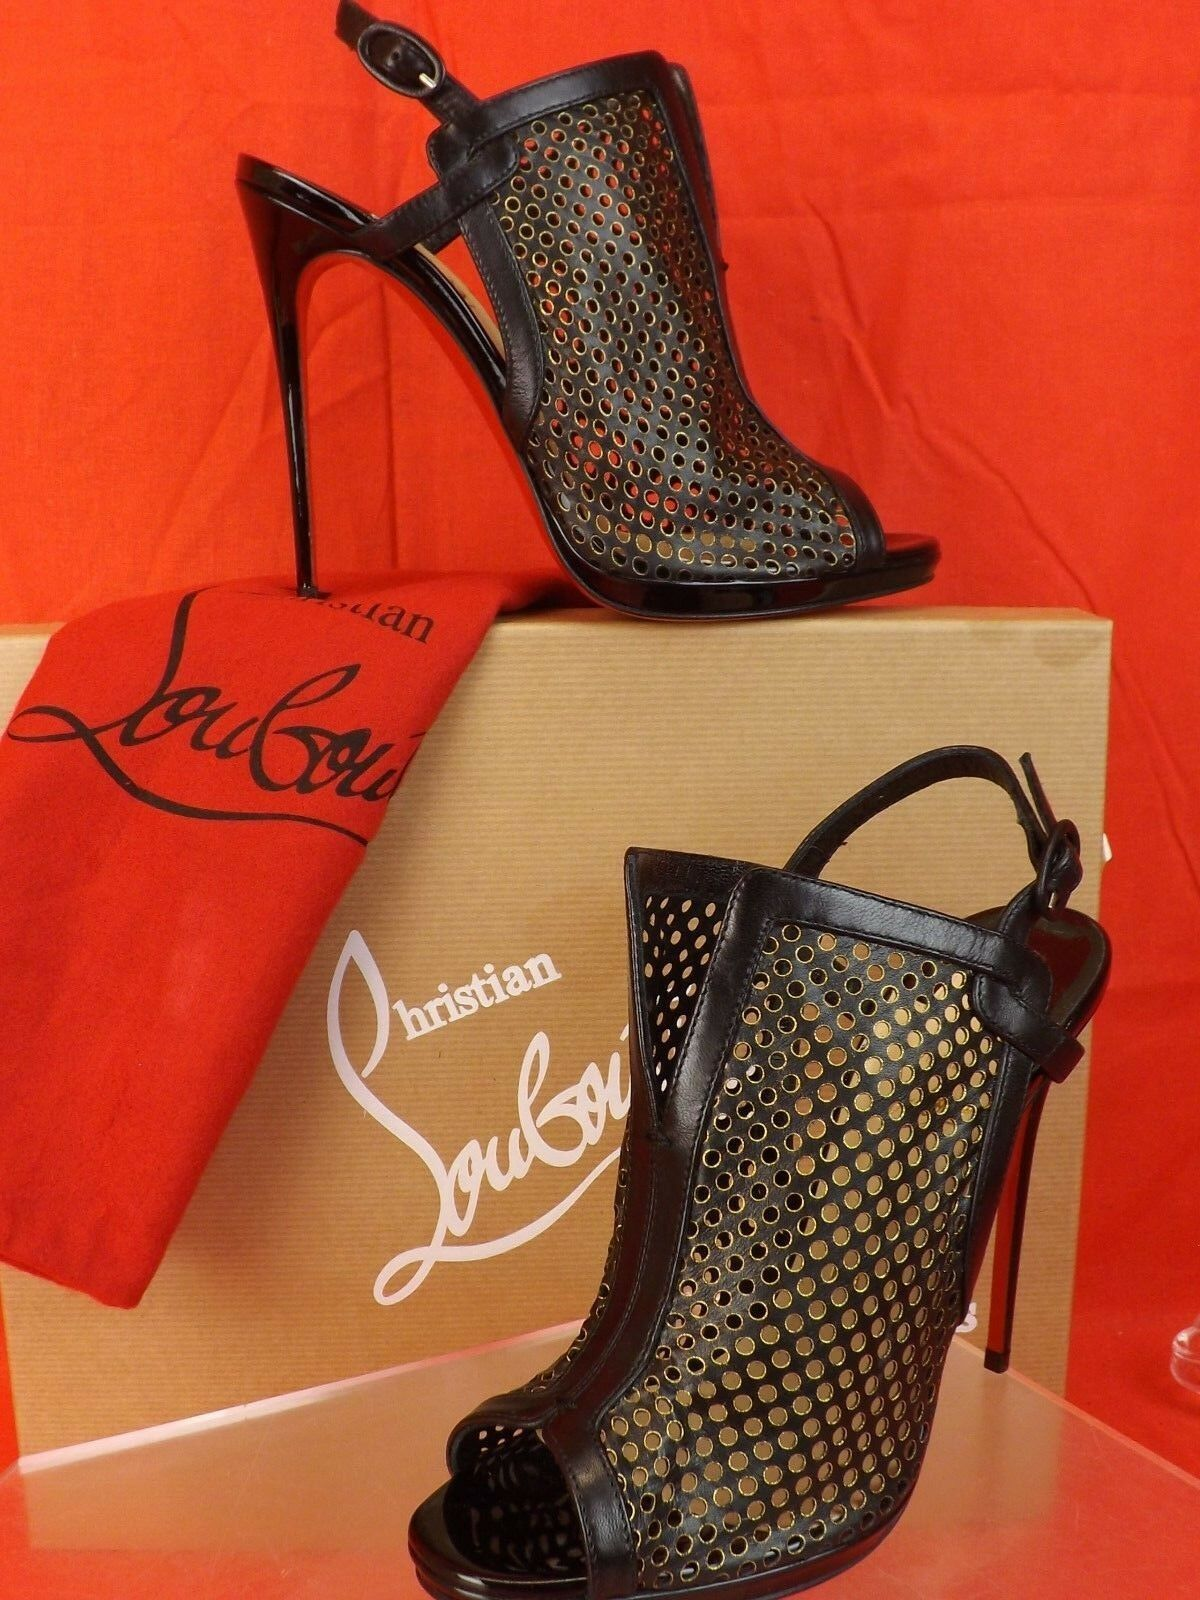 NIB LOUBOUTIN ESCRIMINETTE 120 BLACK PERFORATED LEATHER SANDALS PUMPS 40.5